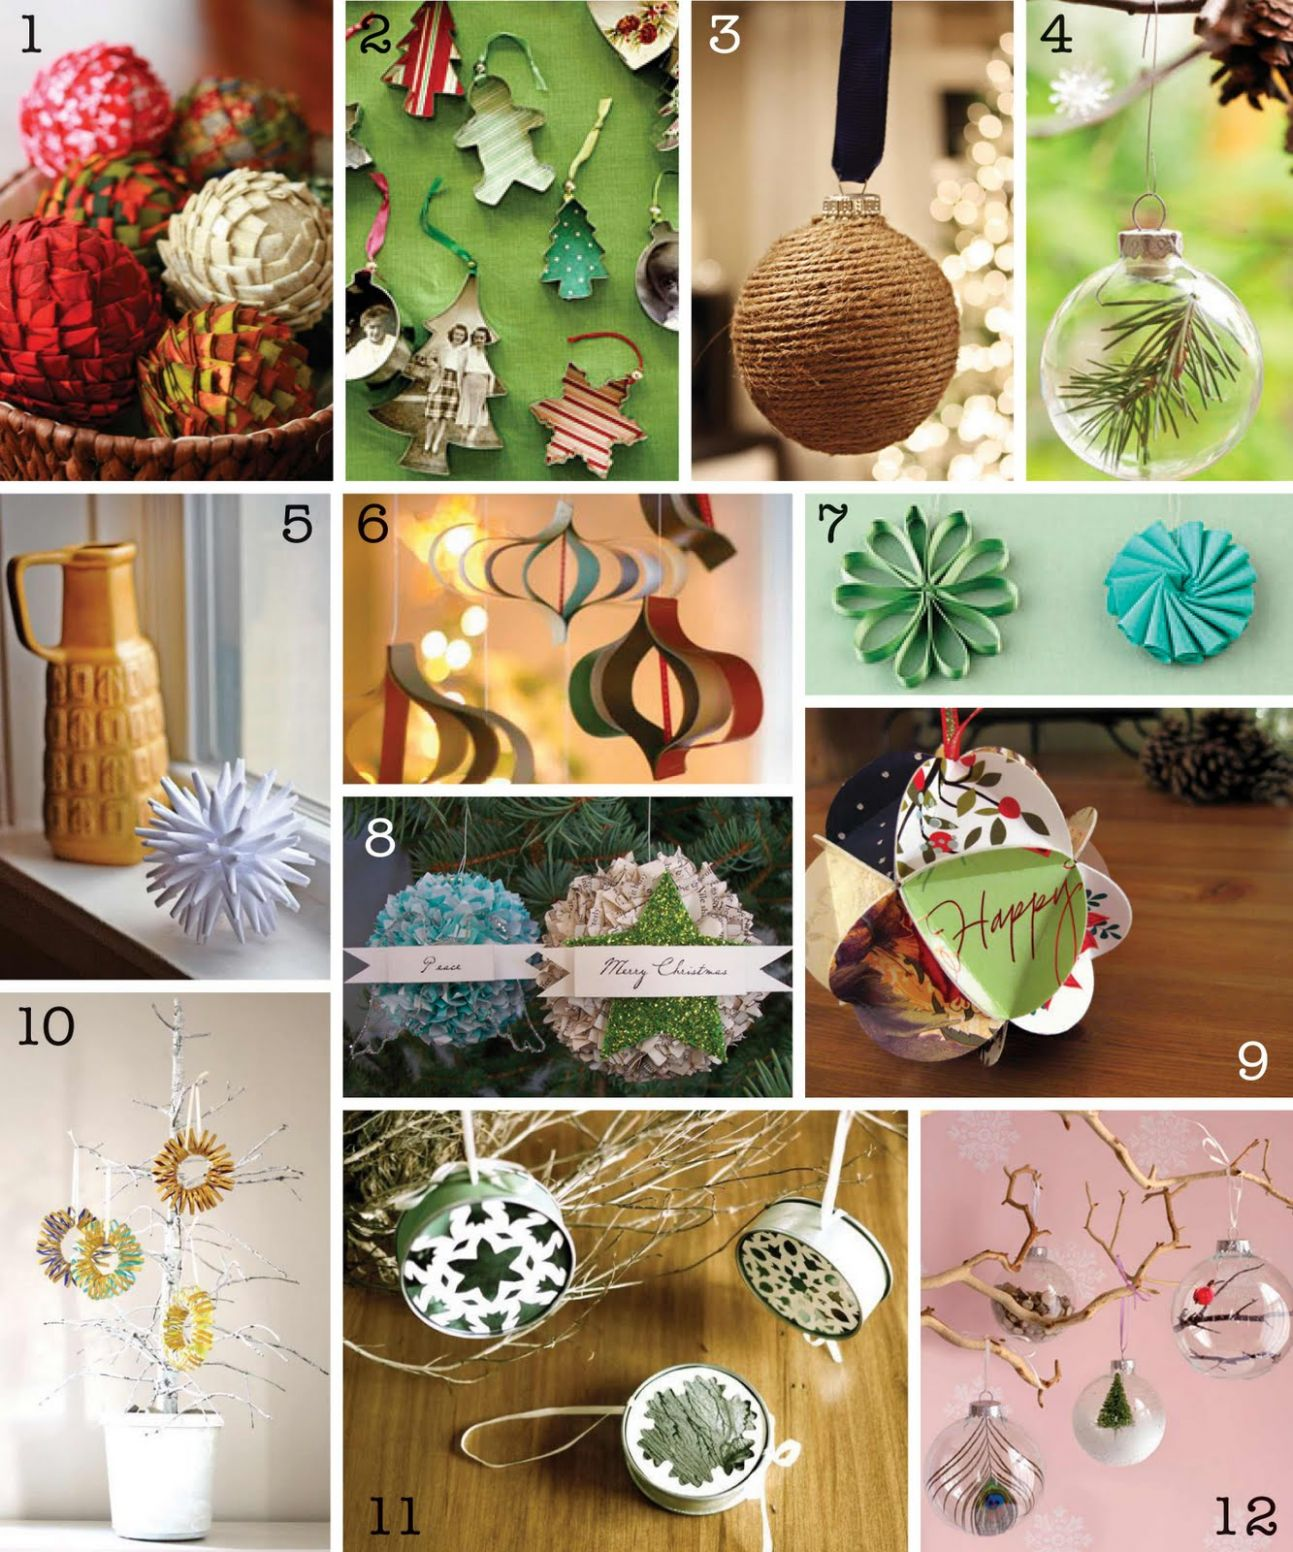 The Creative Place: DIY Christmas Ornament Round-Up - diy home decor ornaments